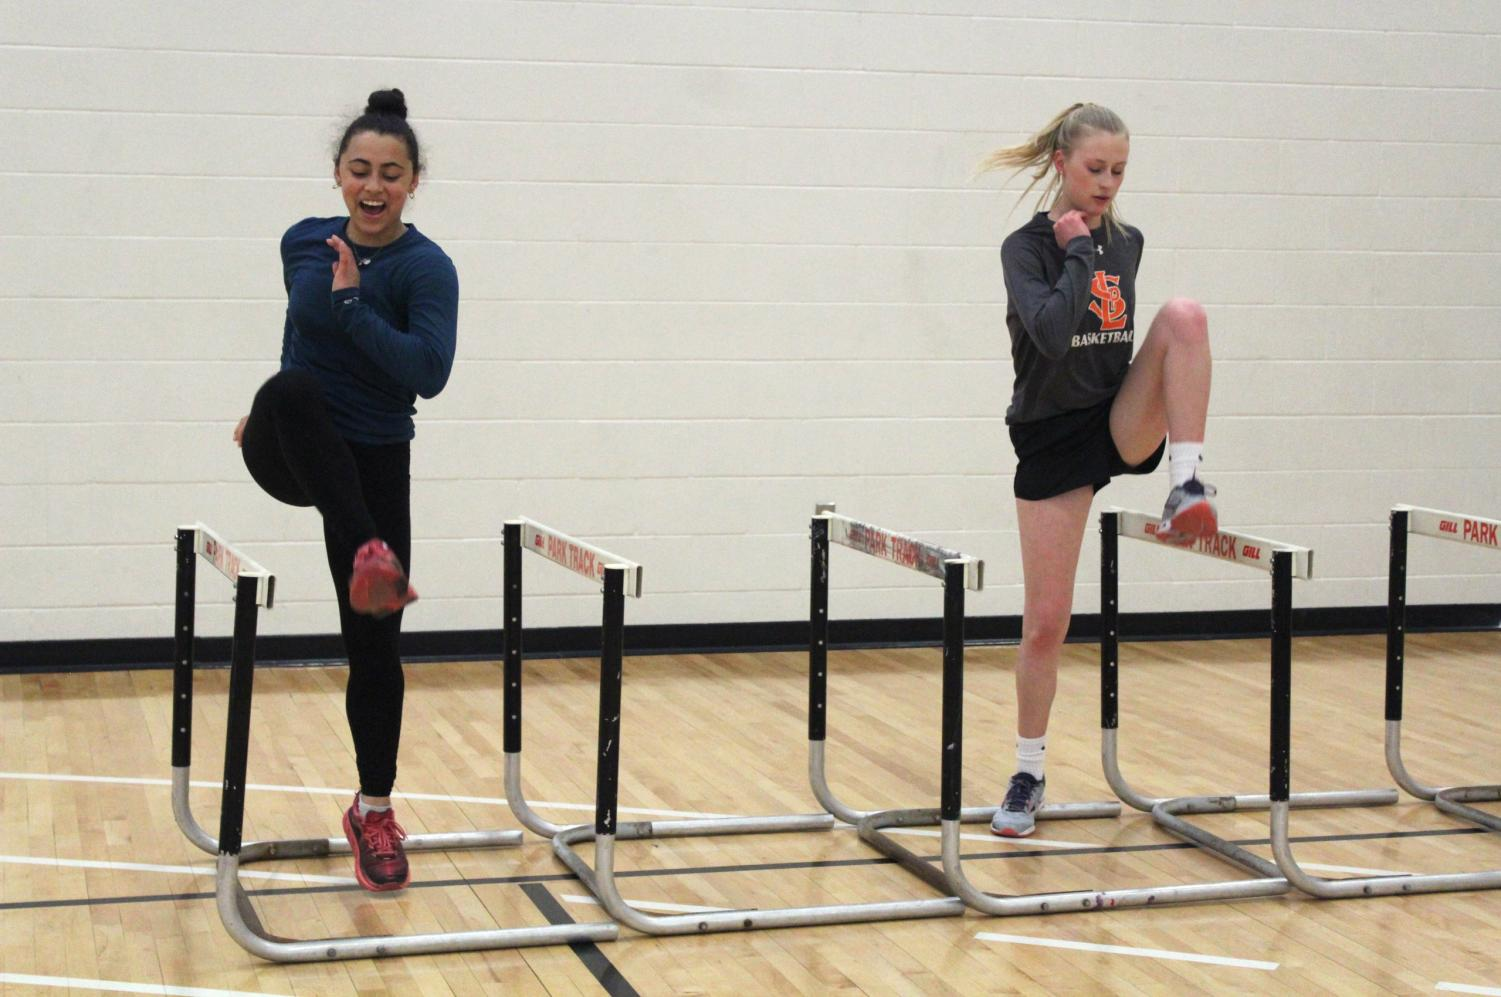 Senior girls' track captain Anna duSaire and sophomore Anna Keith jump over hurdles April 13. Athletes warm up during practice.